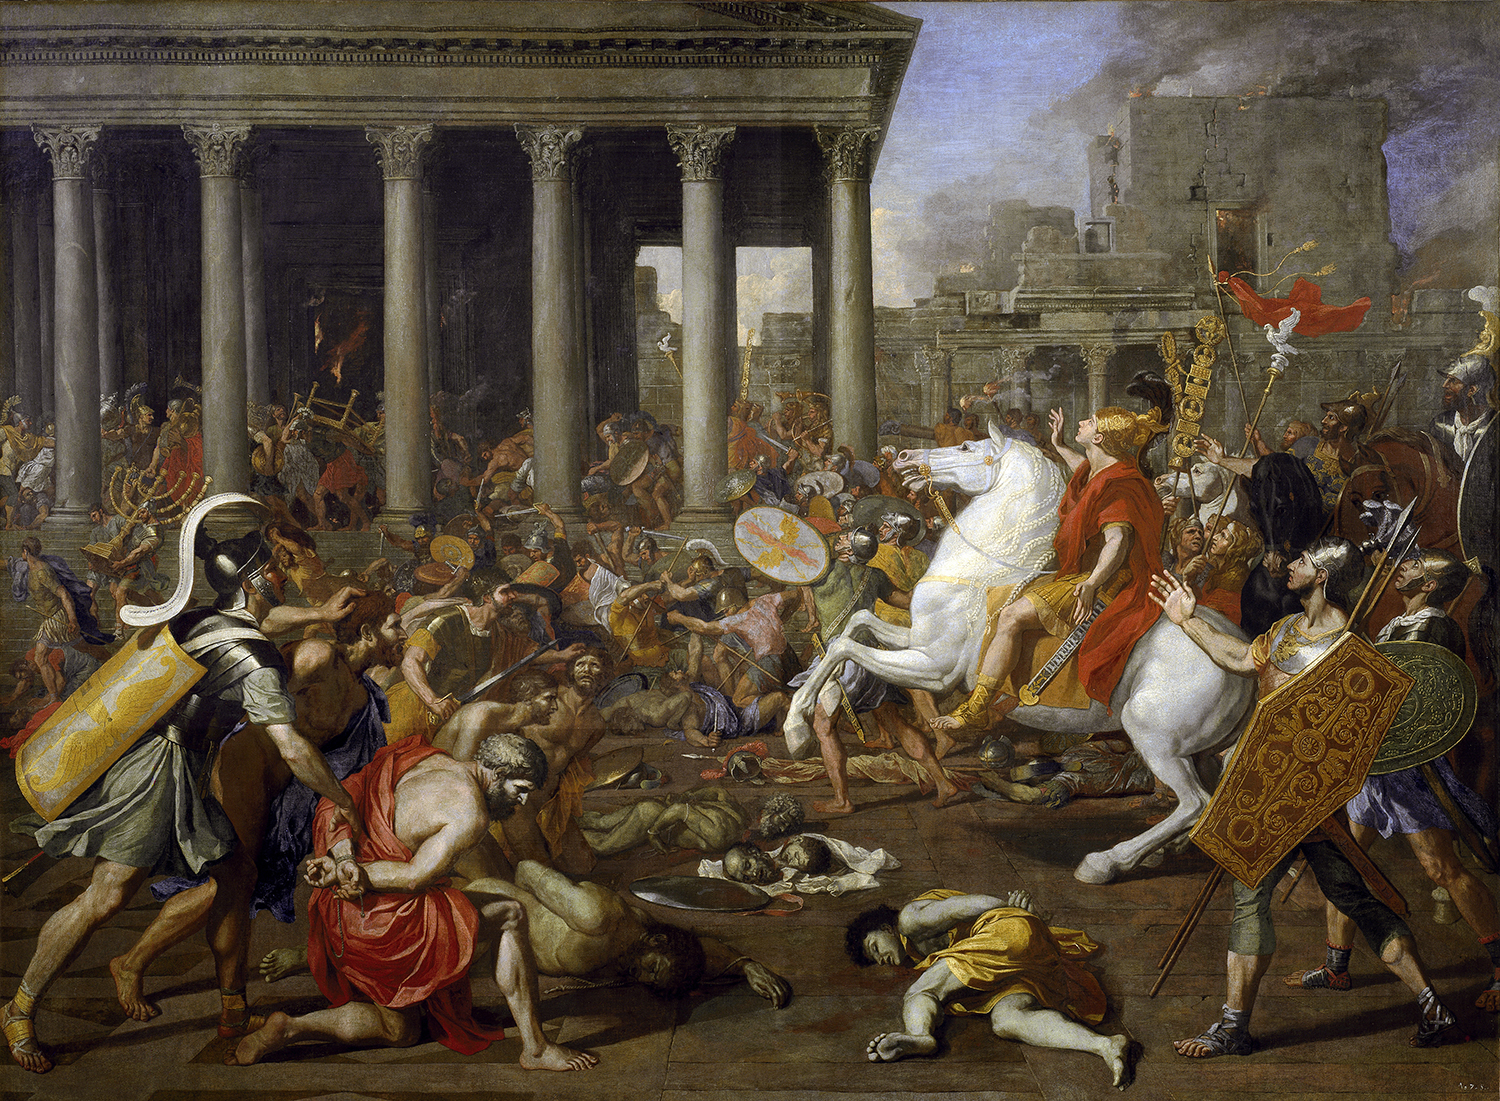 The Destruction of the Temples in Jerusalem by Titus by Nicolas Poussin (1594-1665).